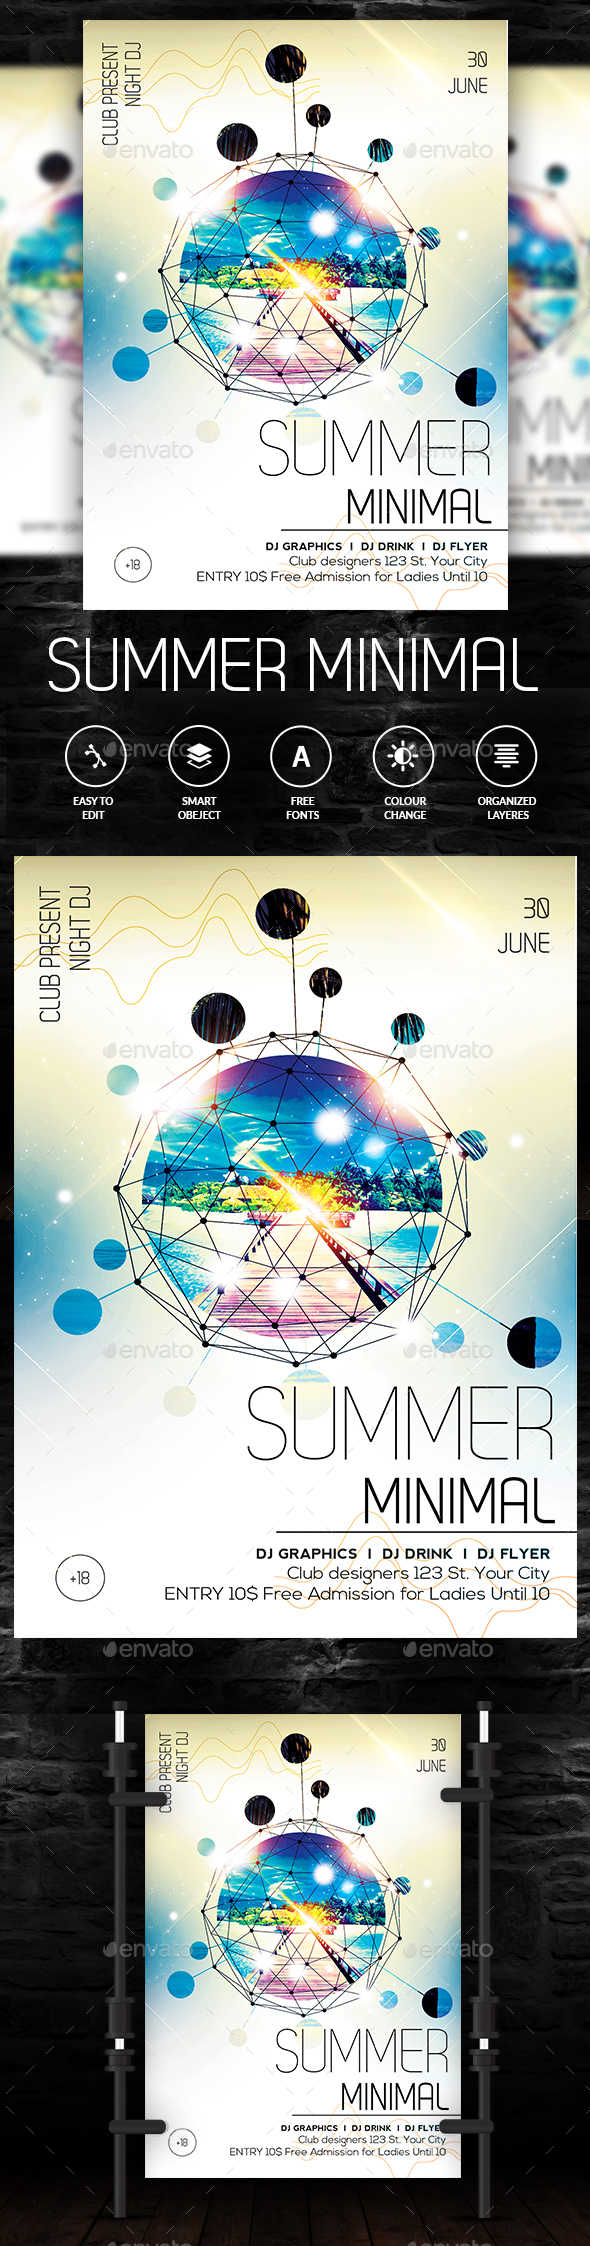 Summer Minimal Flyer - Clubs & Parties Events